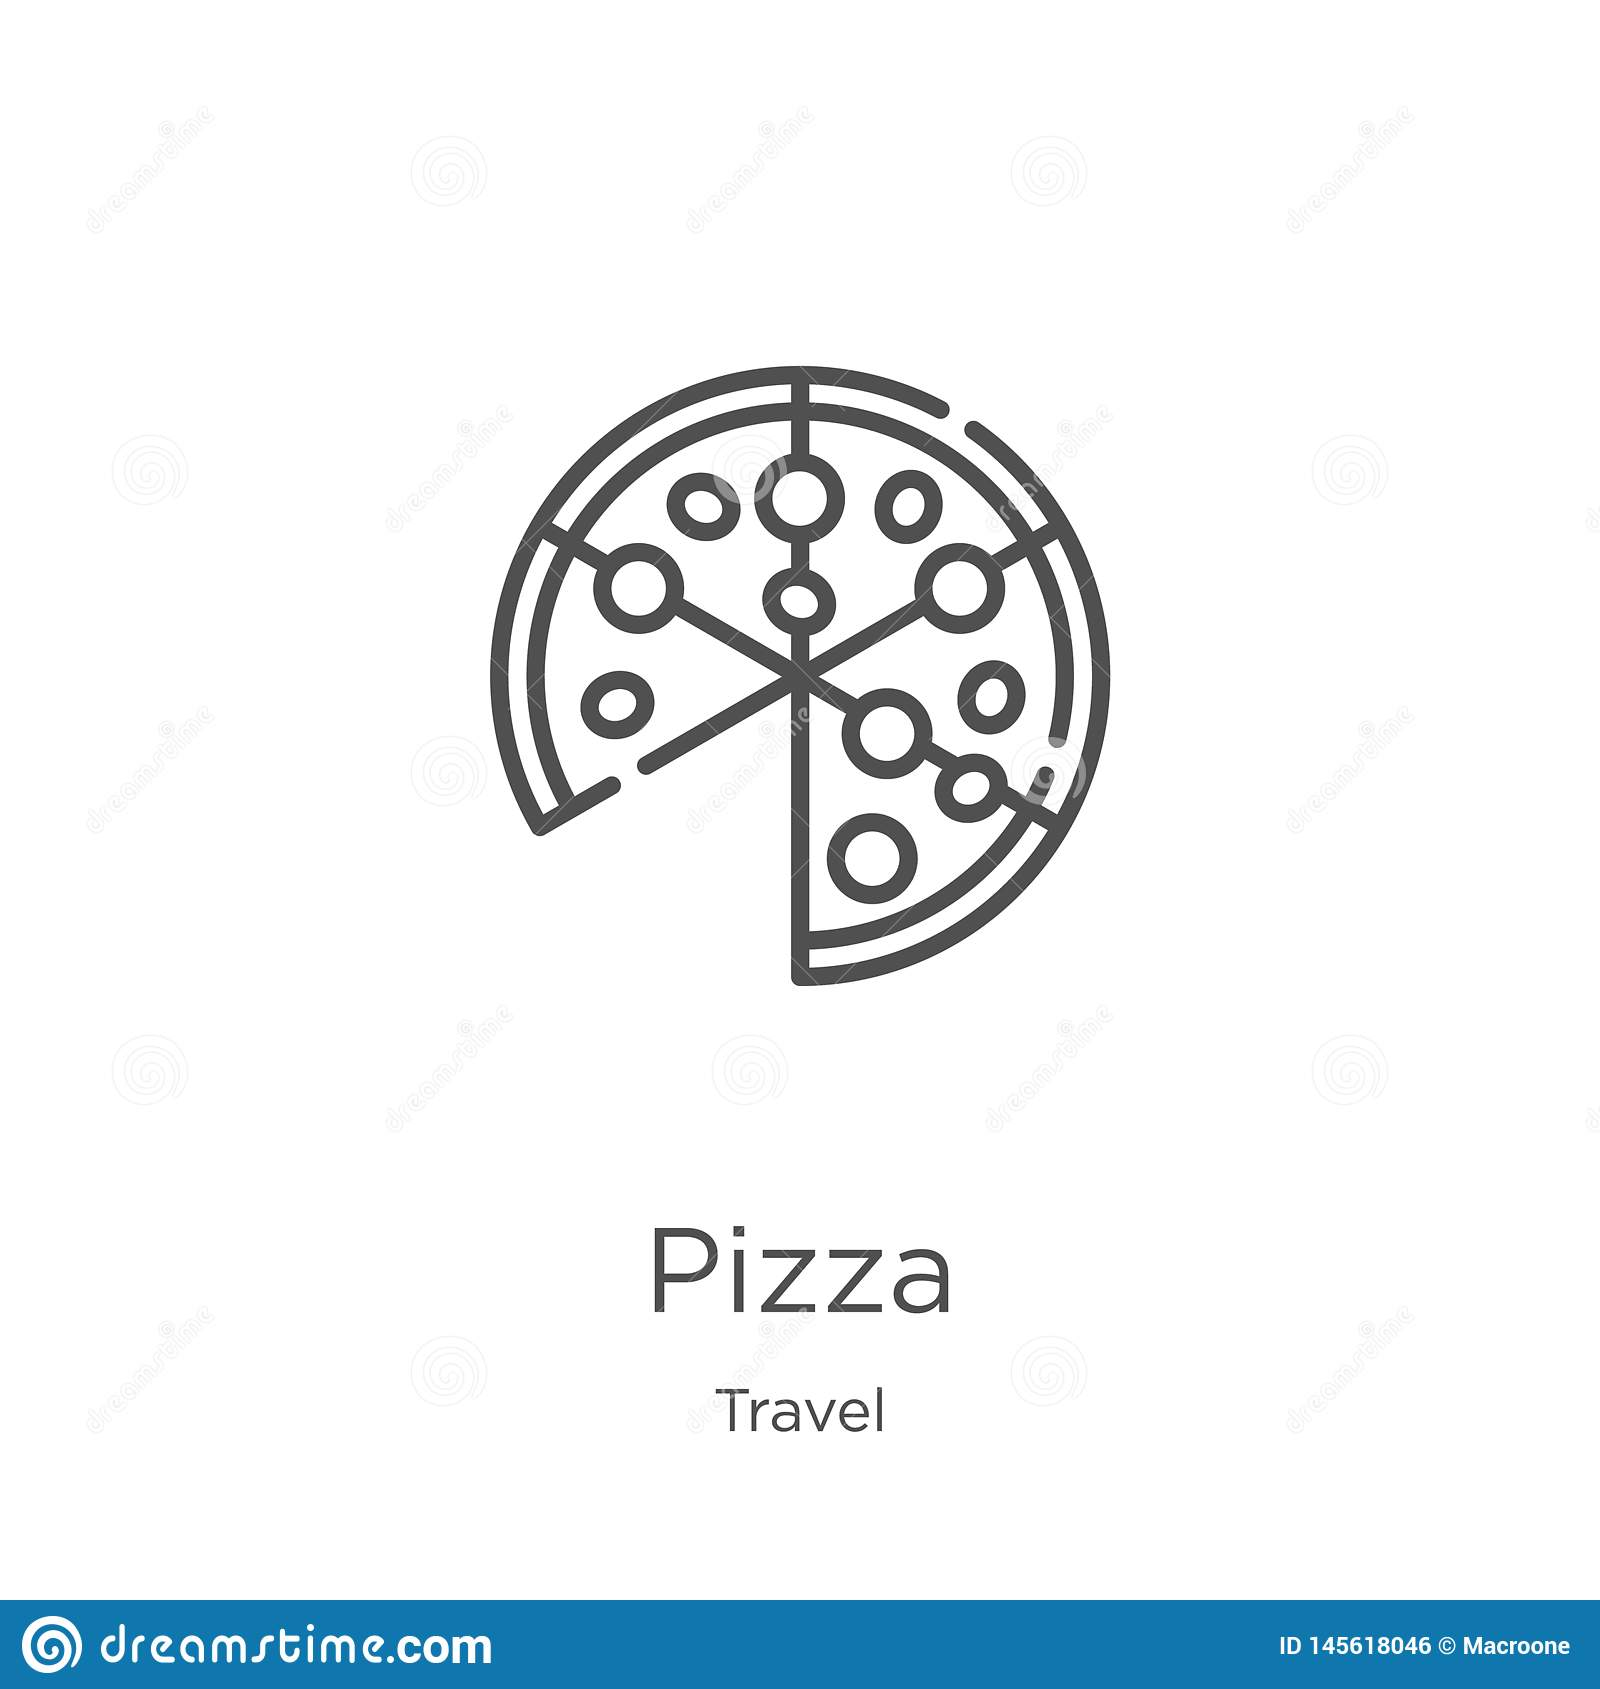 pizza icon vector from travel collection. Thin line pizza outline icon vector illustration. Outline, thin line pizza icon for